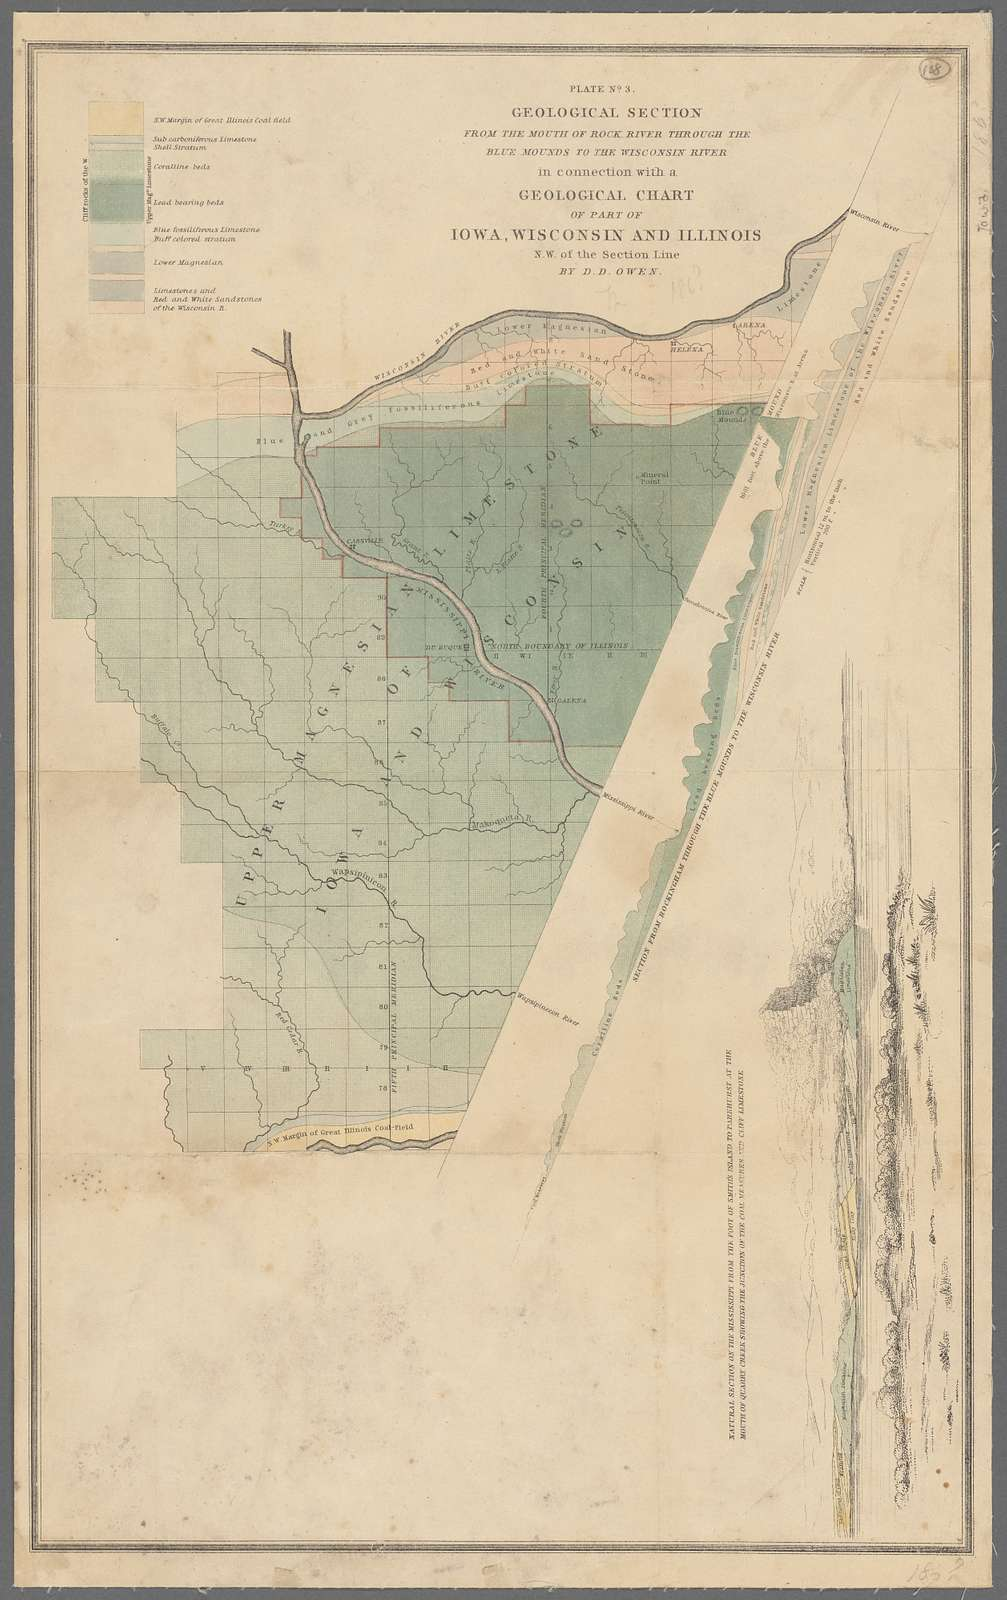 Geological section from the mouth of Rock River through the Blue Mounds to the Wisconsin River : in connection with a geological chart of part of Iowa, Wisconsin and Illinois, N.W. of the section line